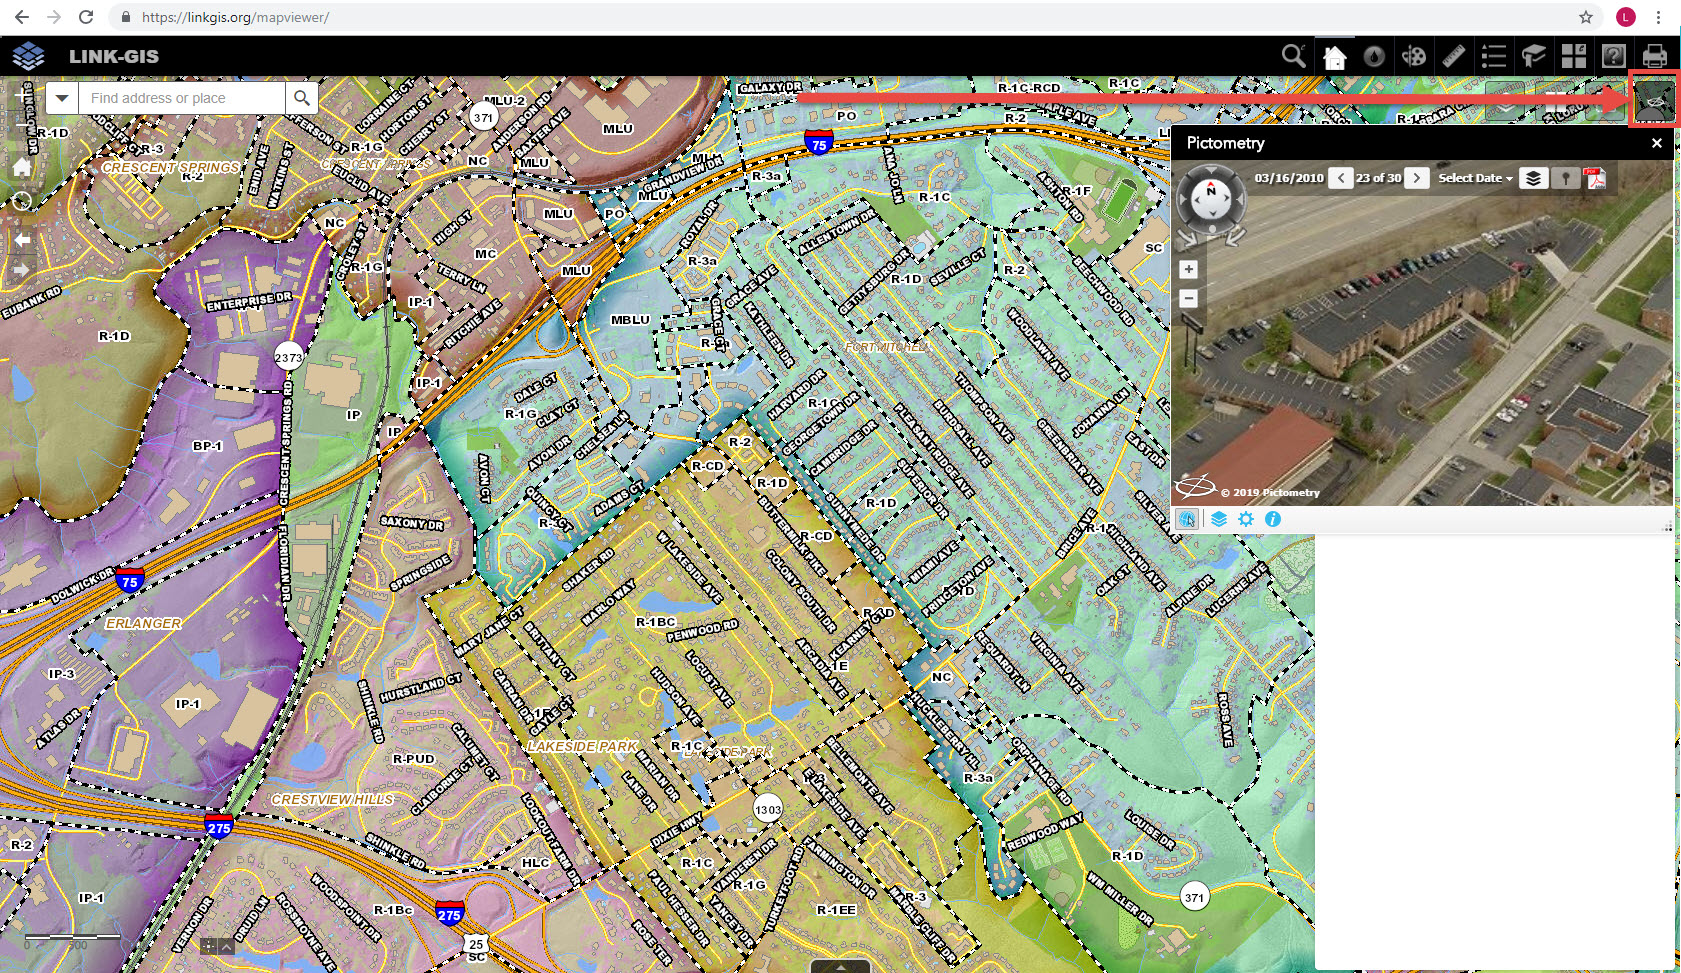 LINK-GIS Adds Pictometry Widget to the Map Viewer - LINK-GIS on gis city map of texas, gis map layers, gis maps online,